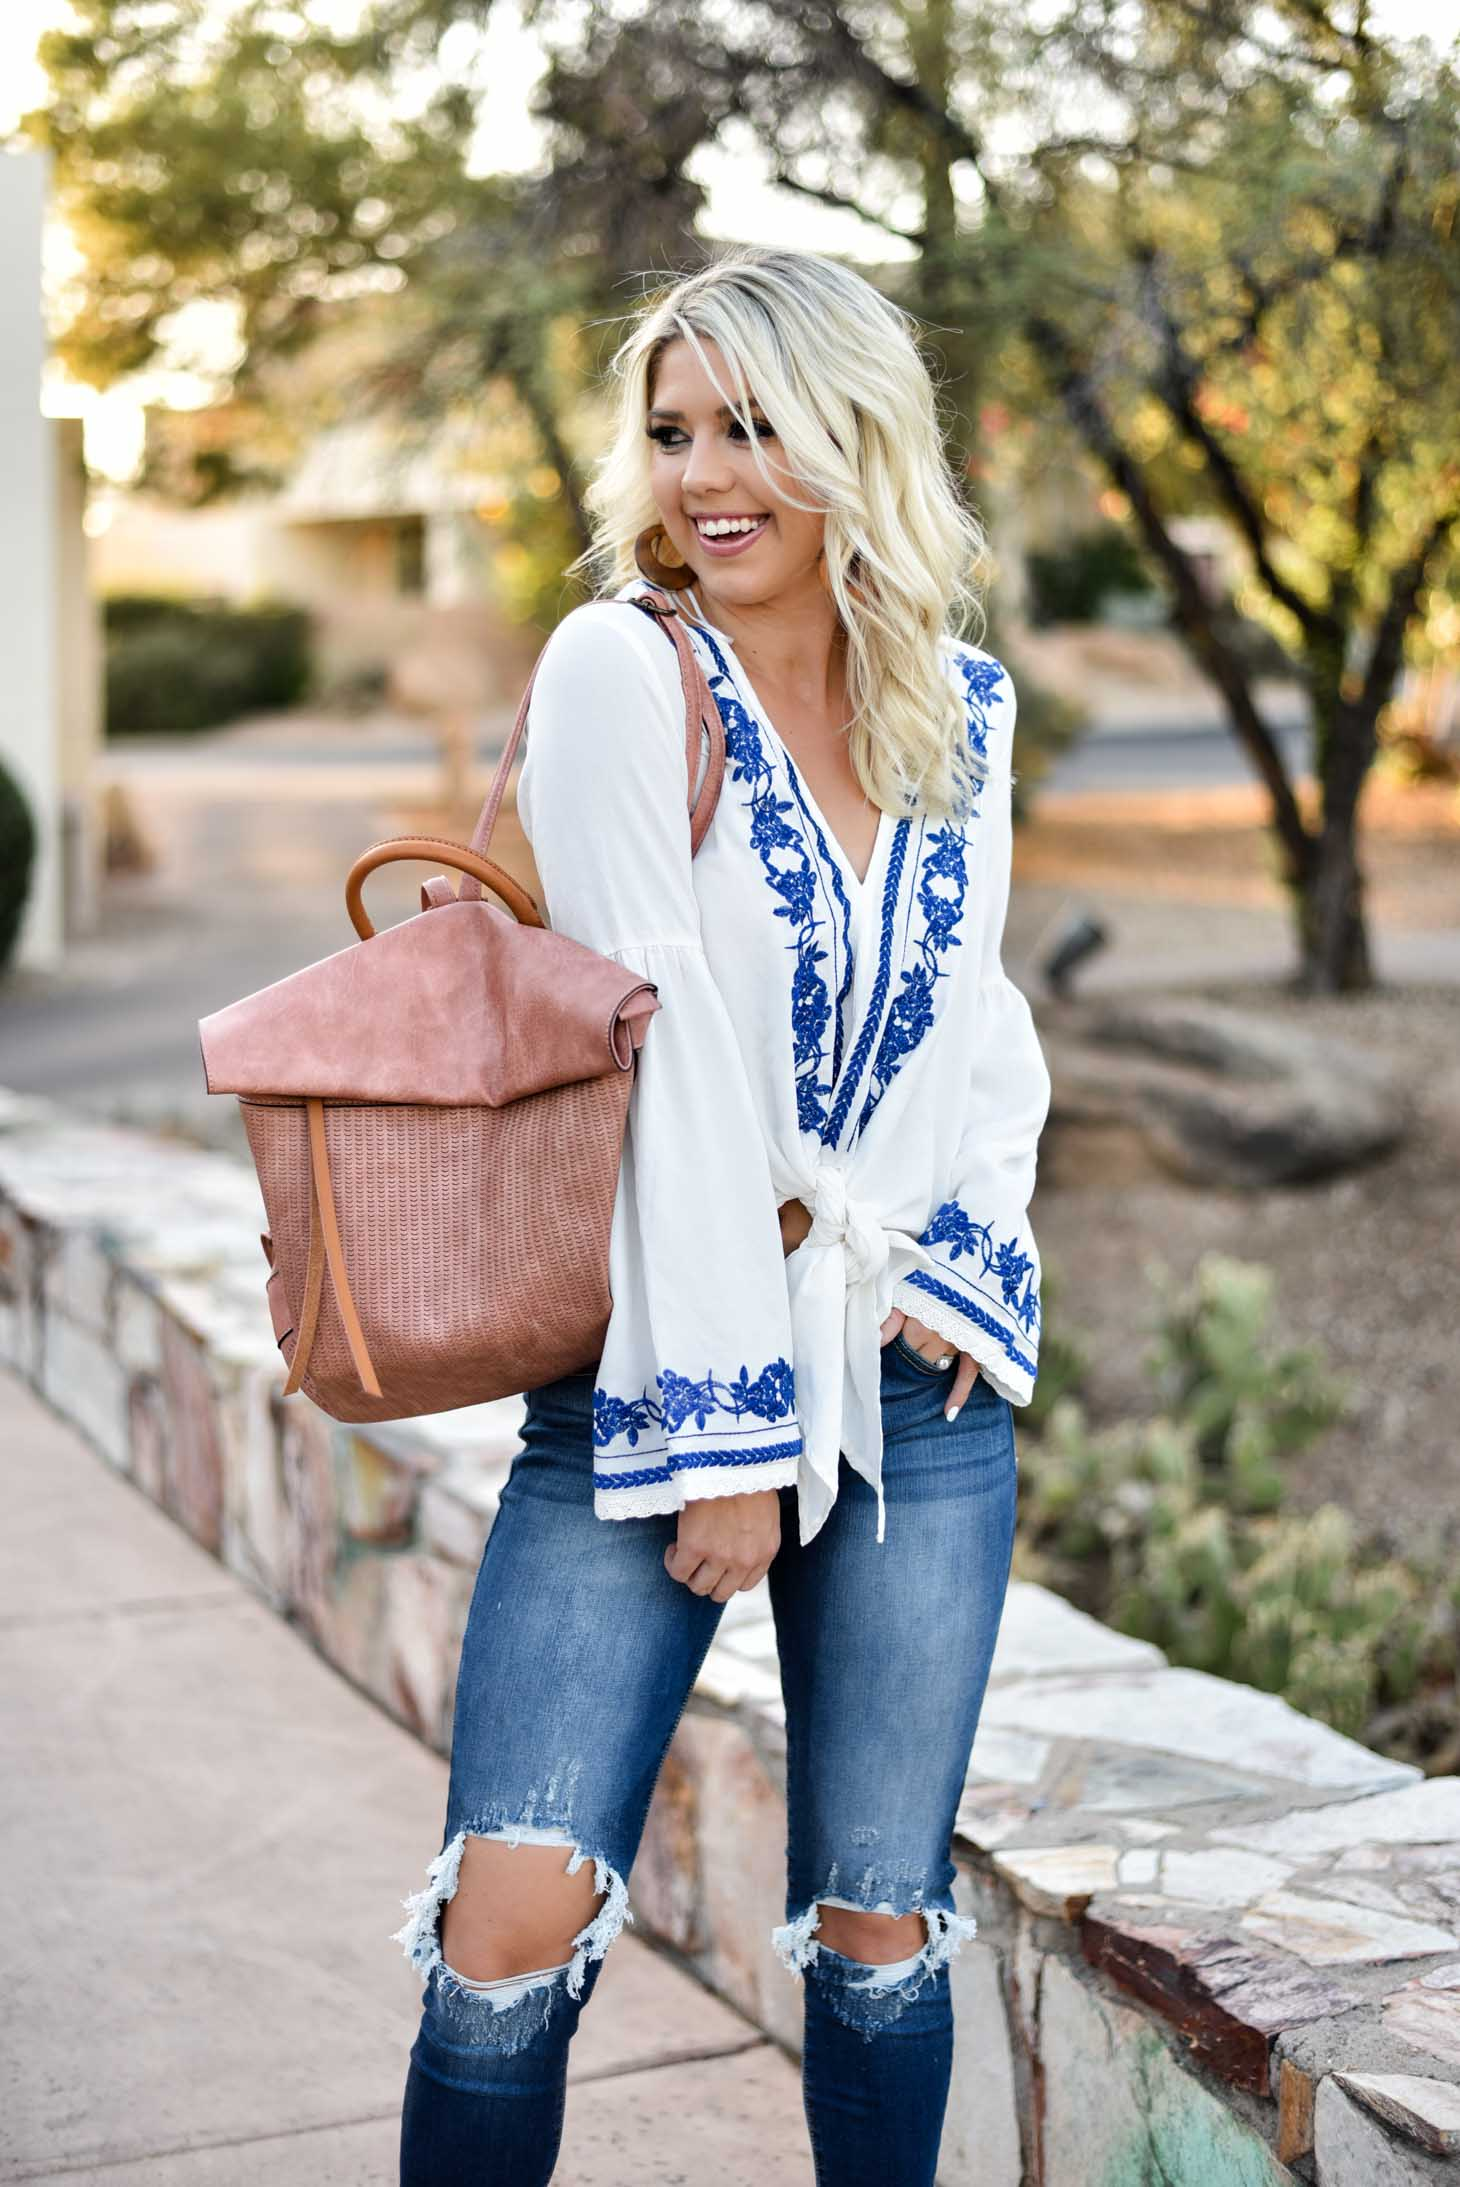 Erin Elizabeth of Wink and a Twirl in this Vici Dolls embroidered top jeans and blush backpack style perfect for summer